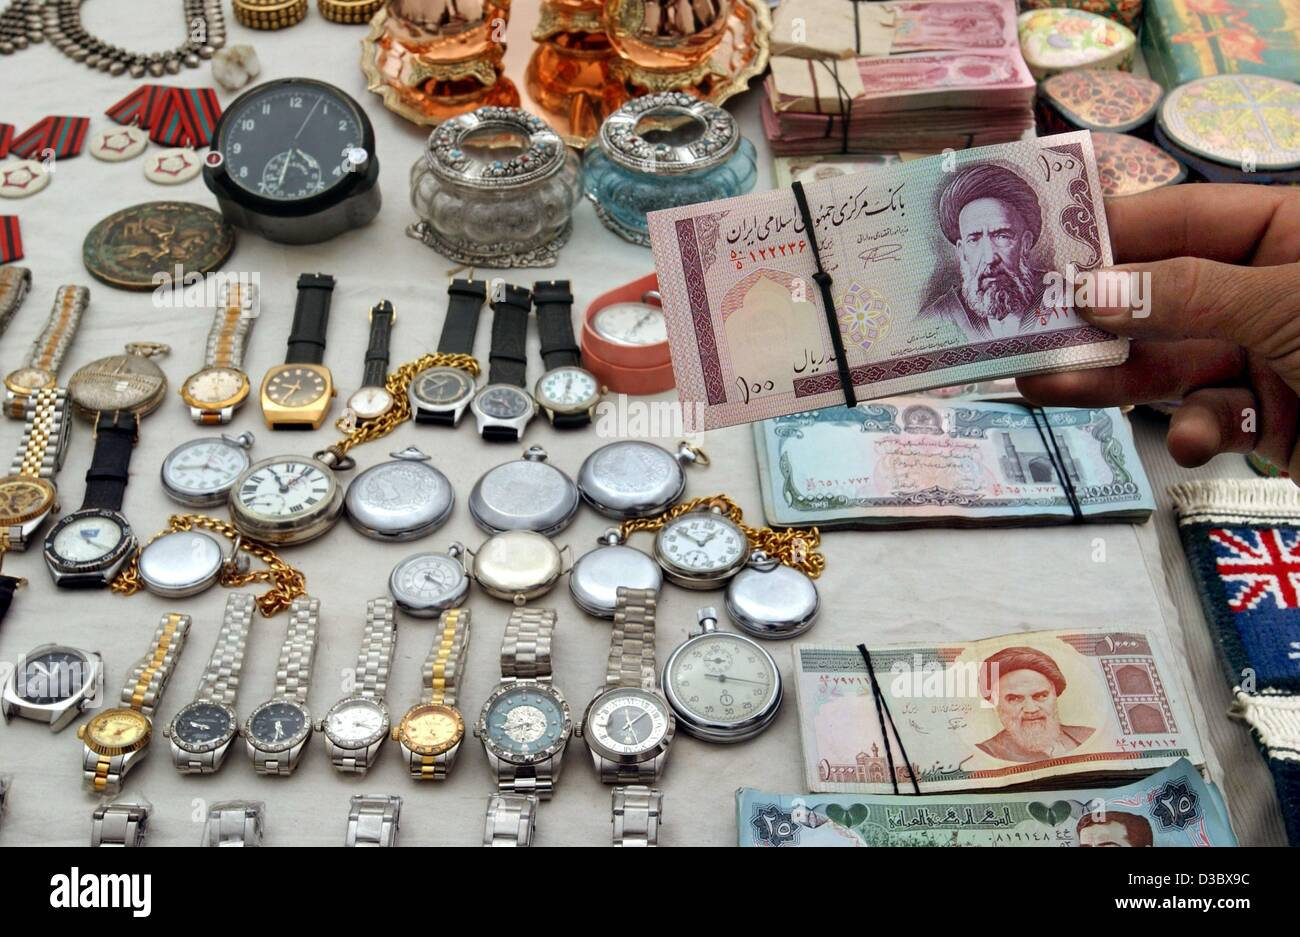 (dpa) - Watches, medals and old notes bearing the face of the assassinated Afghan opposition leader Ahmed Shah Massud - Stock Image